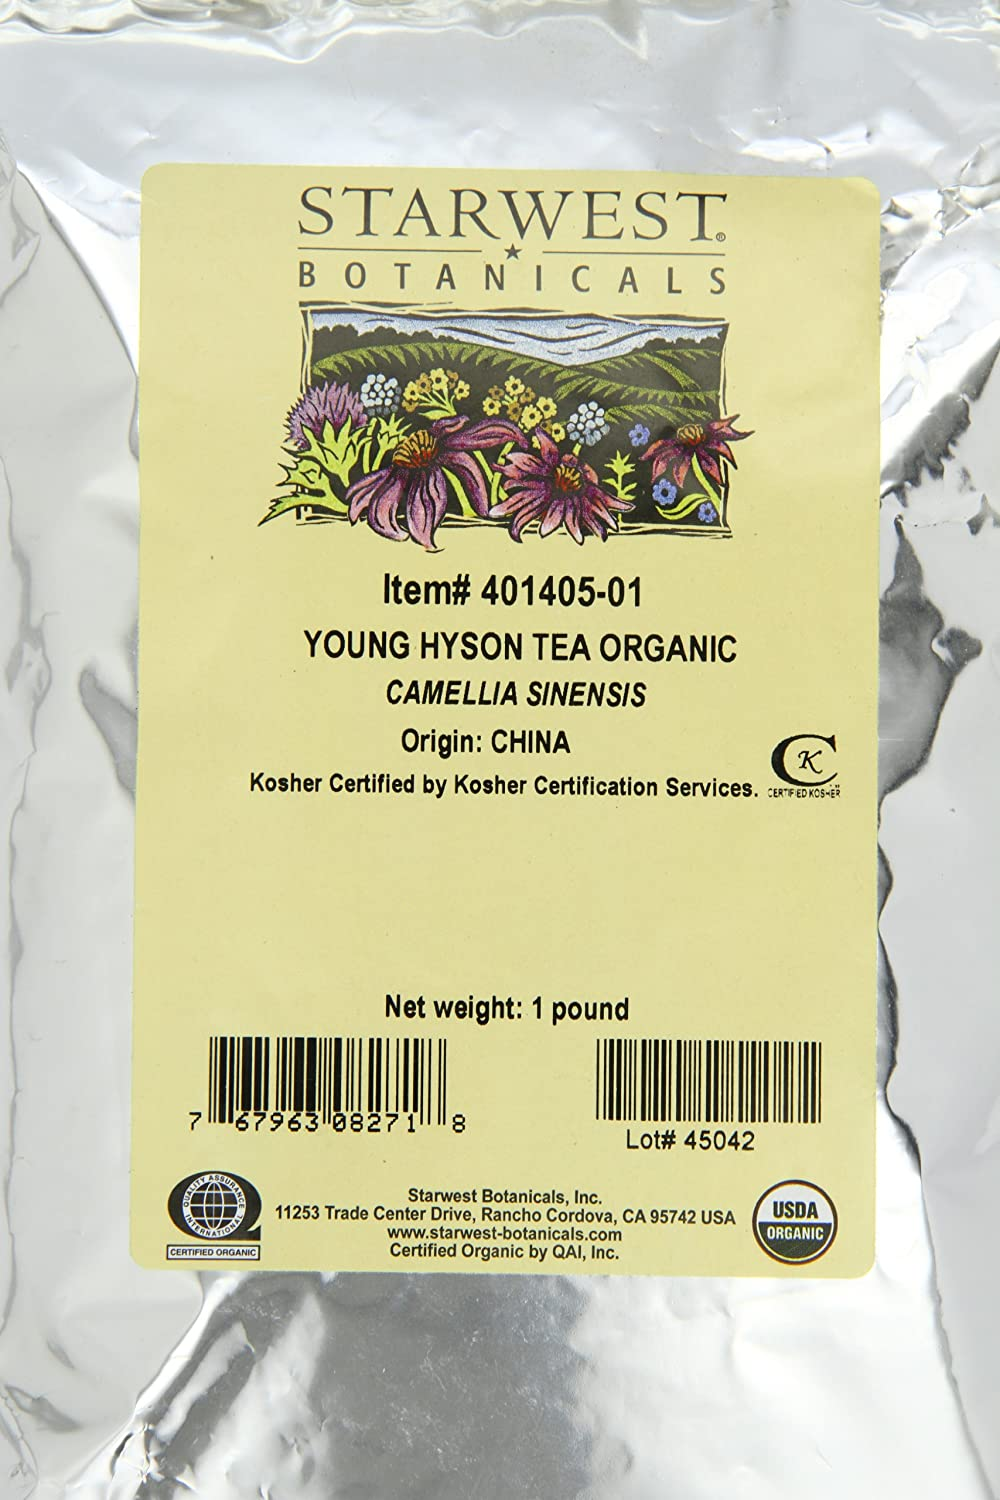 Amazon.com: Starwest Botanicals Organic Young Hyson Tea, 1-pound Bag: Health & Personal Care